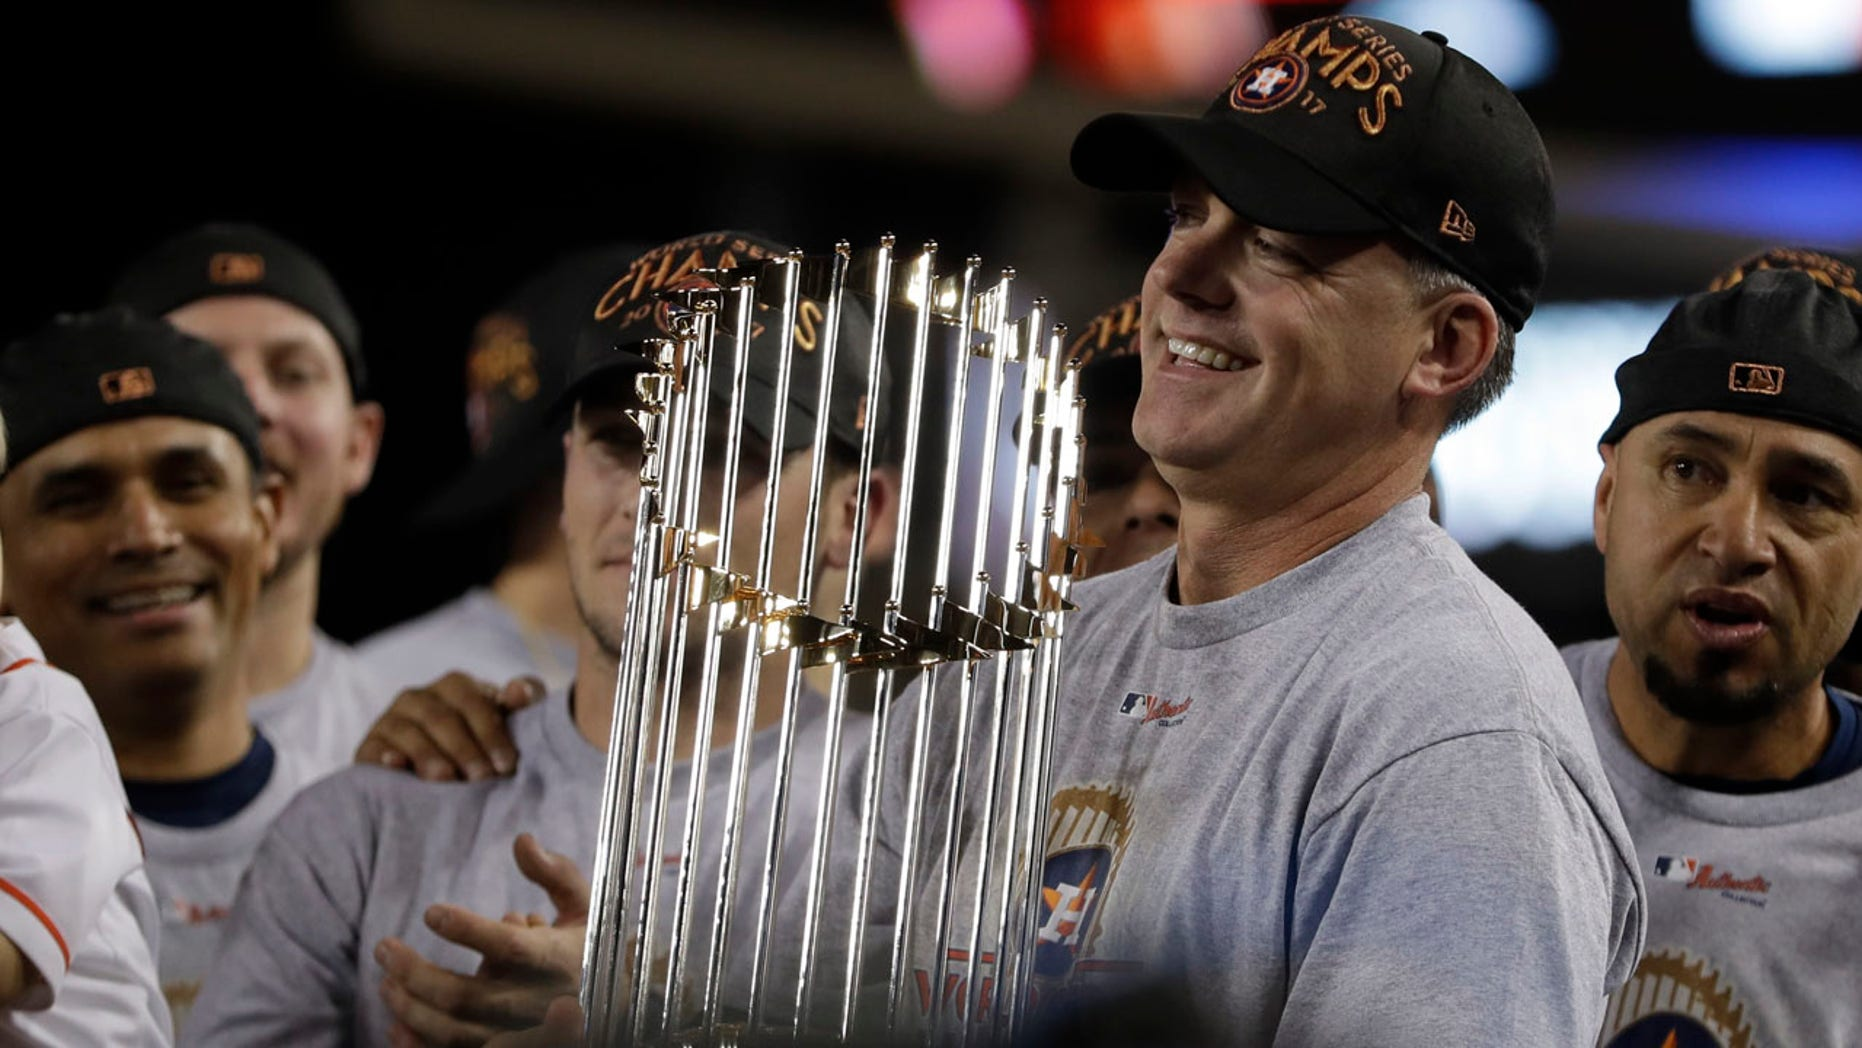 Houston Astros manager A.J. Hinch holds the championship trophy after Game 7 of baseball's World Series against the Dodgers in Los Angeles, Nov. 1, 2017.